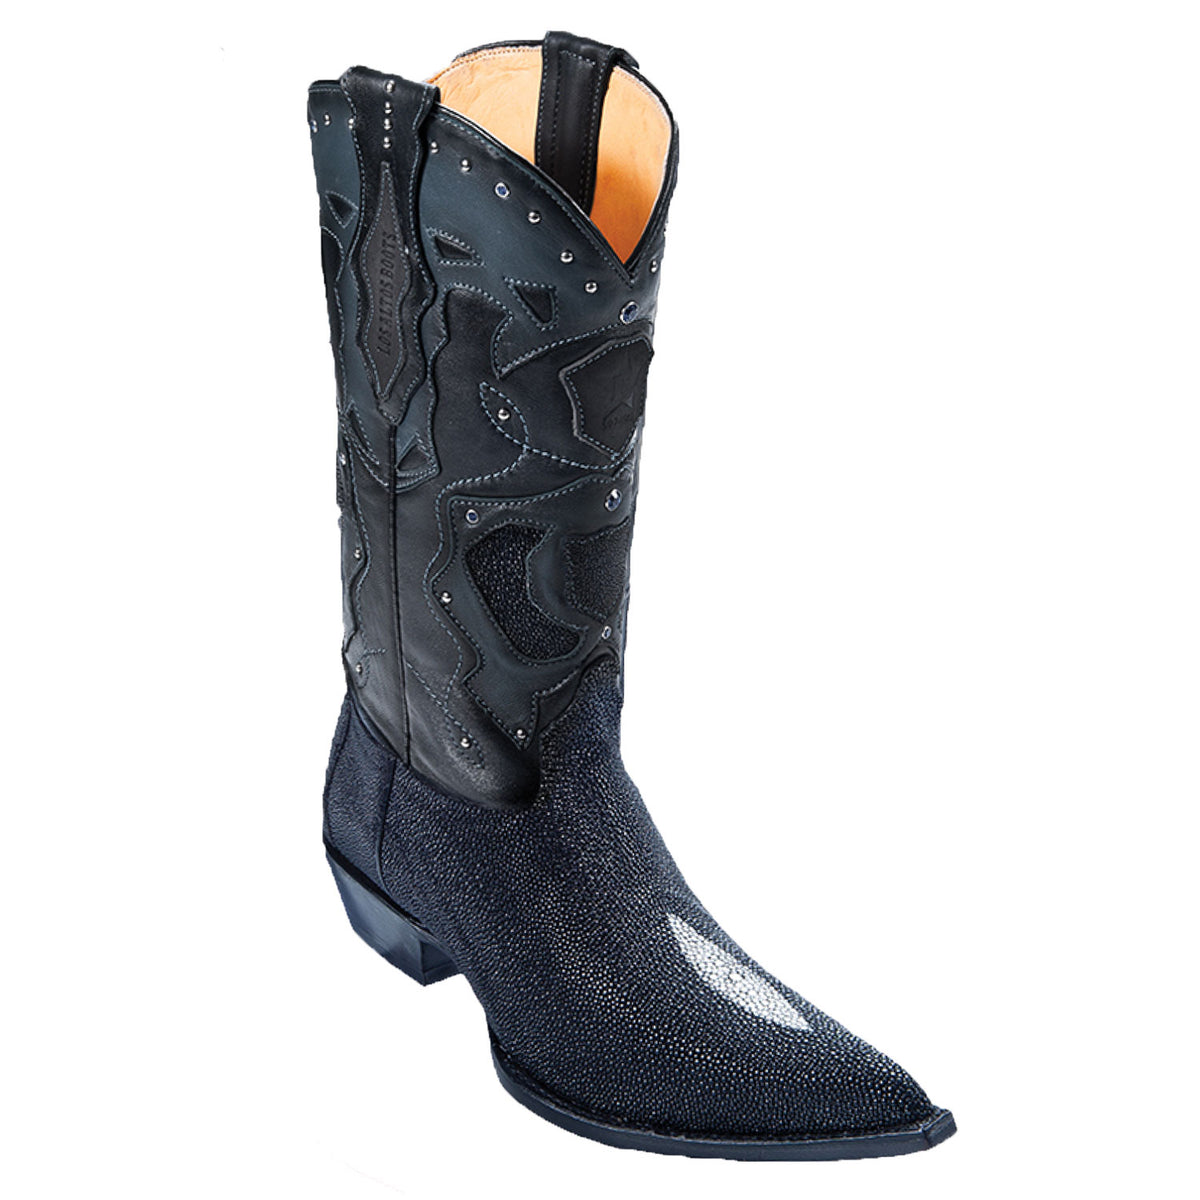 Stingray Skin Boot LAB-95VF12